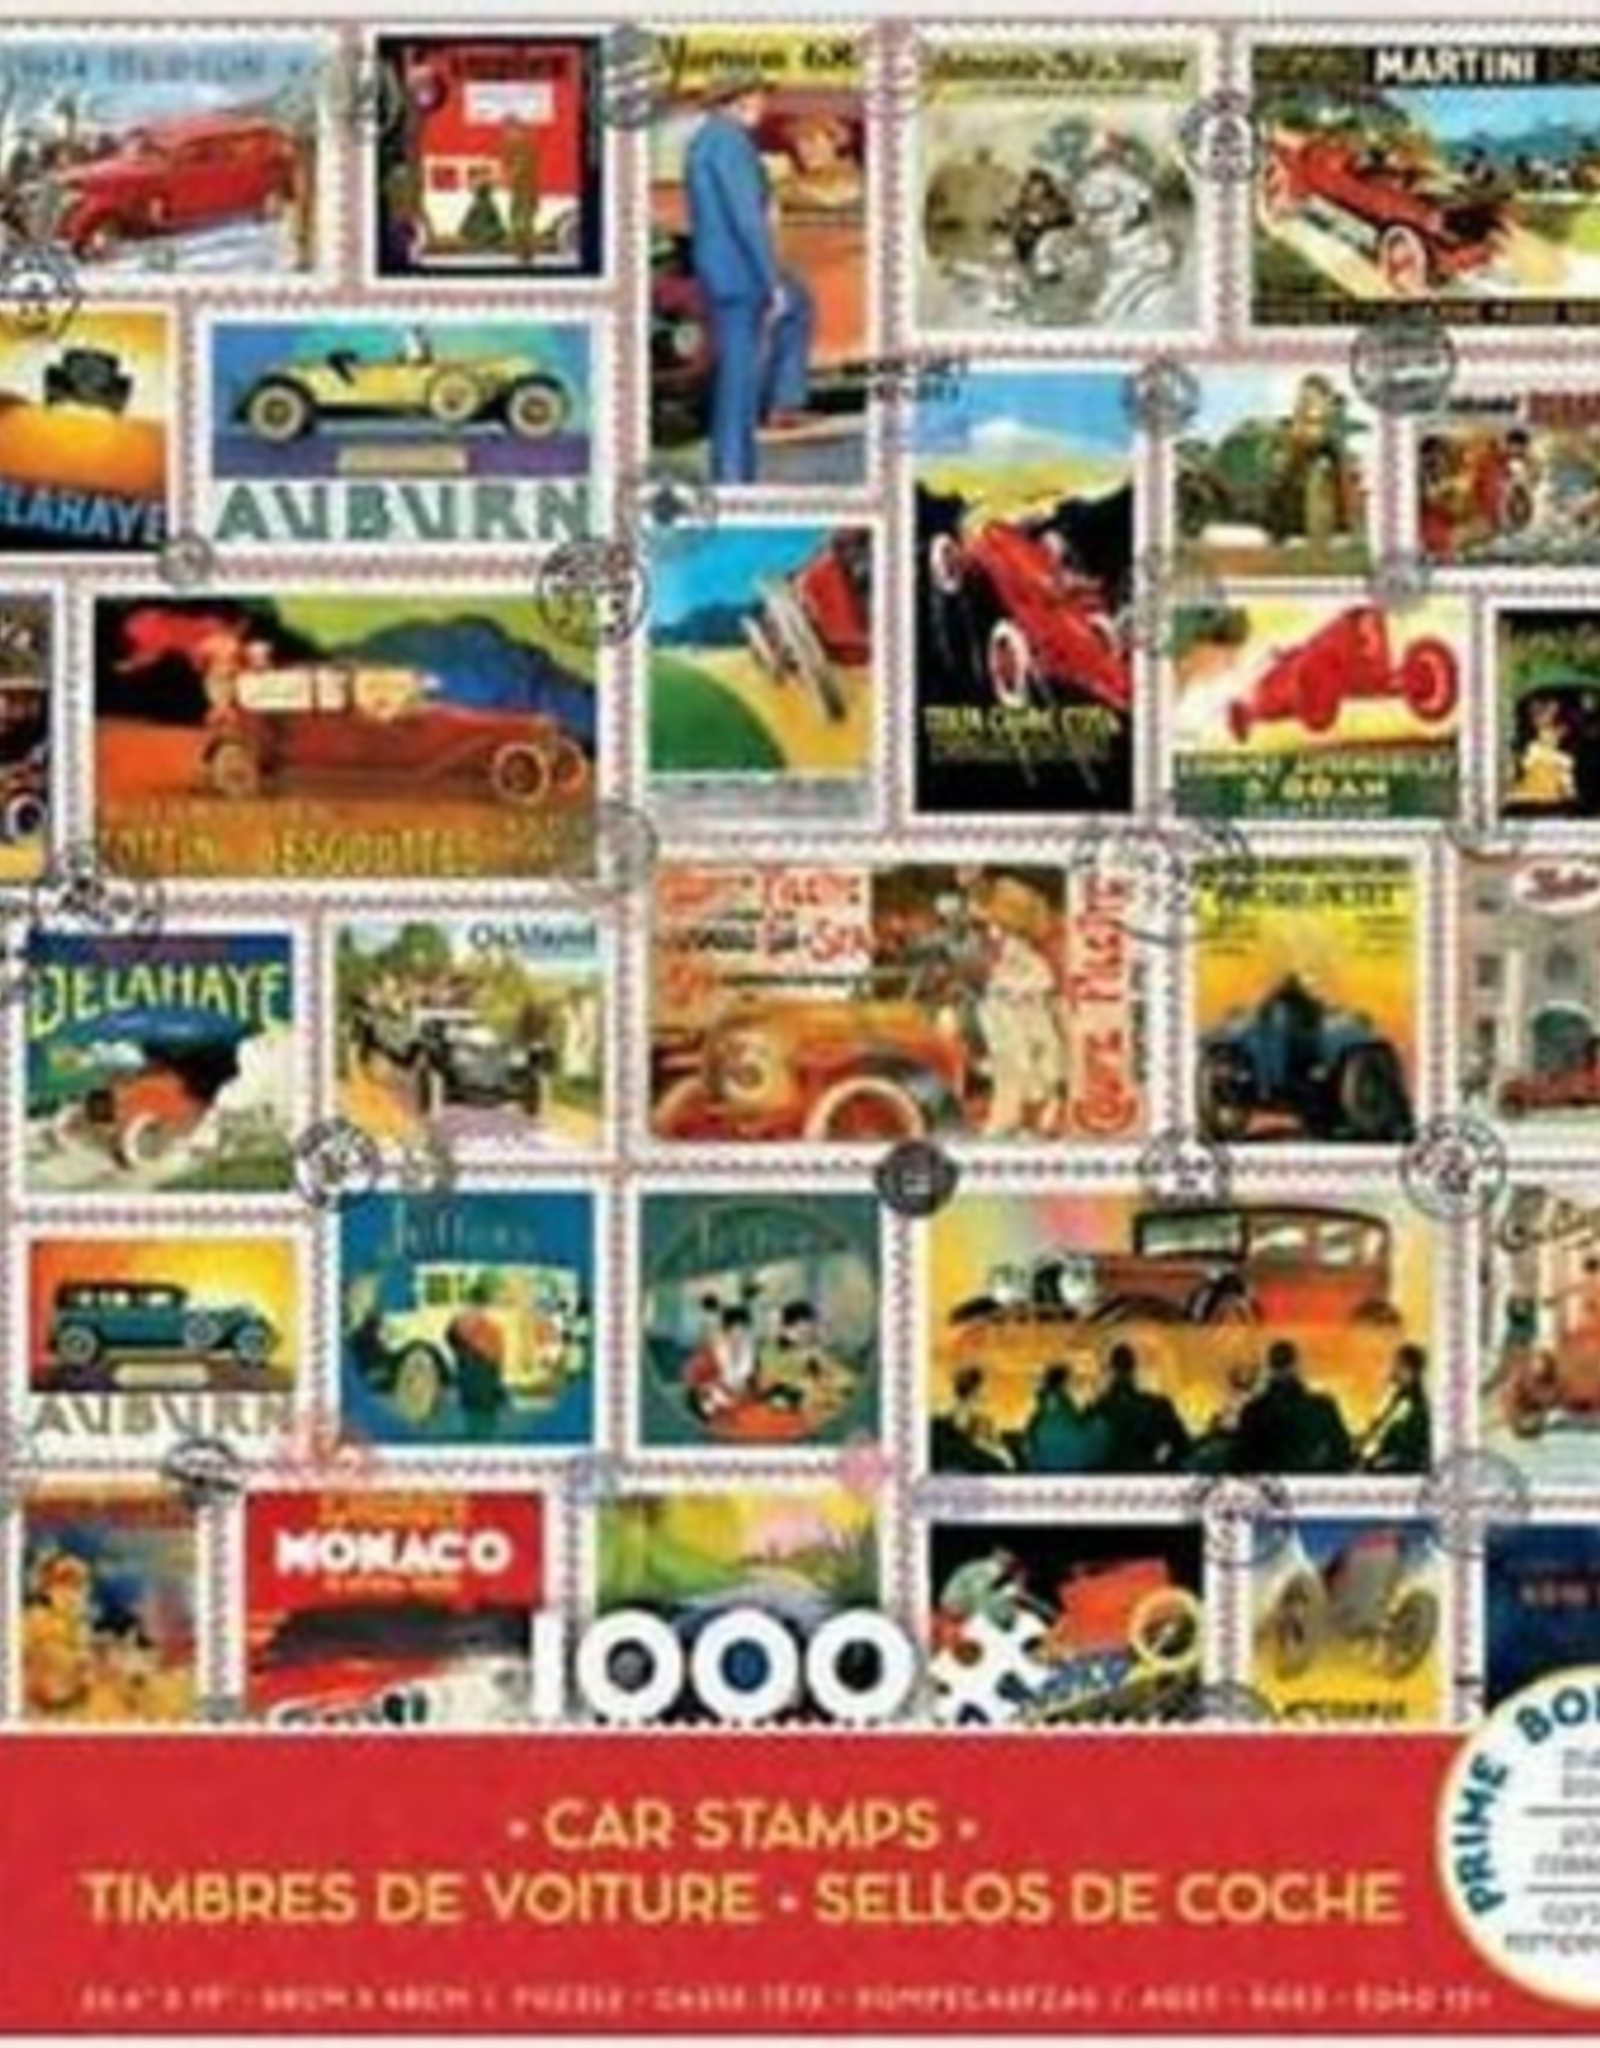 CEACO 1000 pc puzzle - Car Stamps